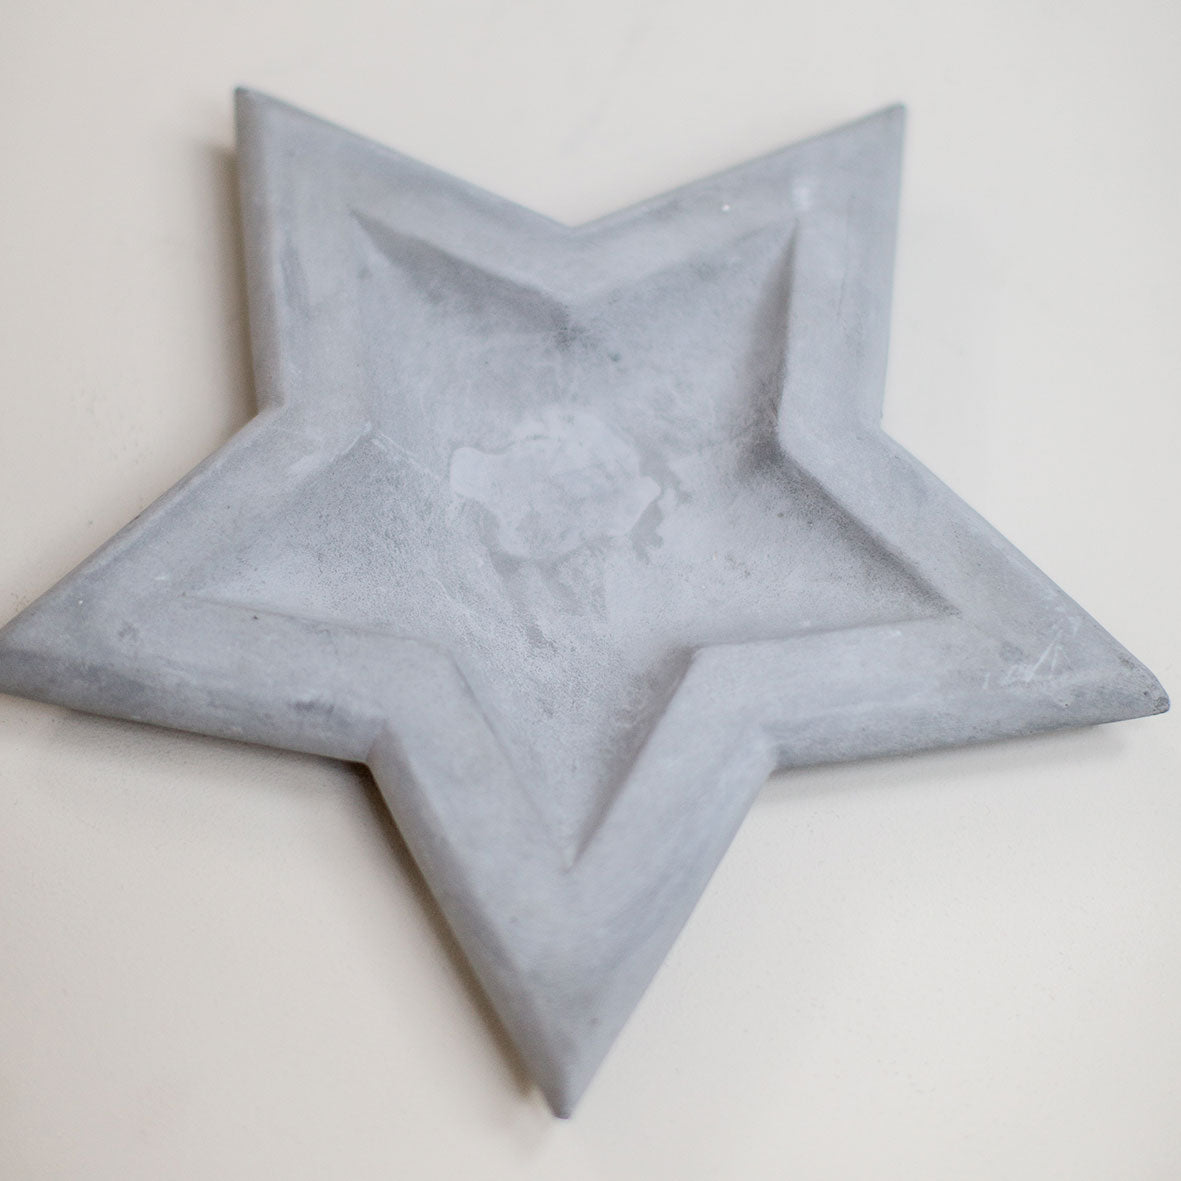 Concrete Star Dish